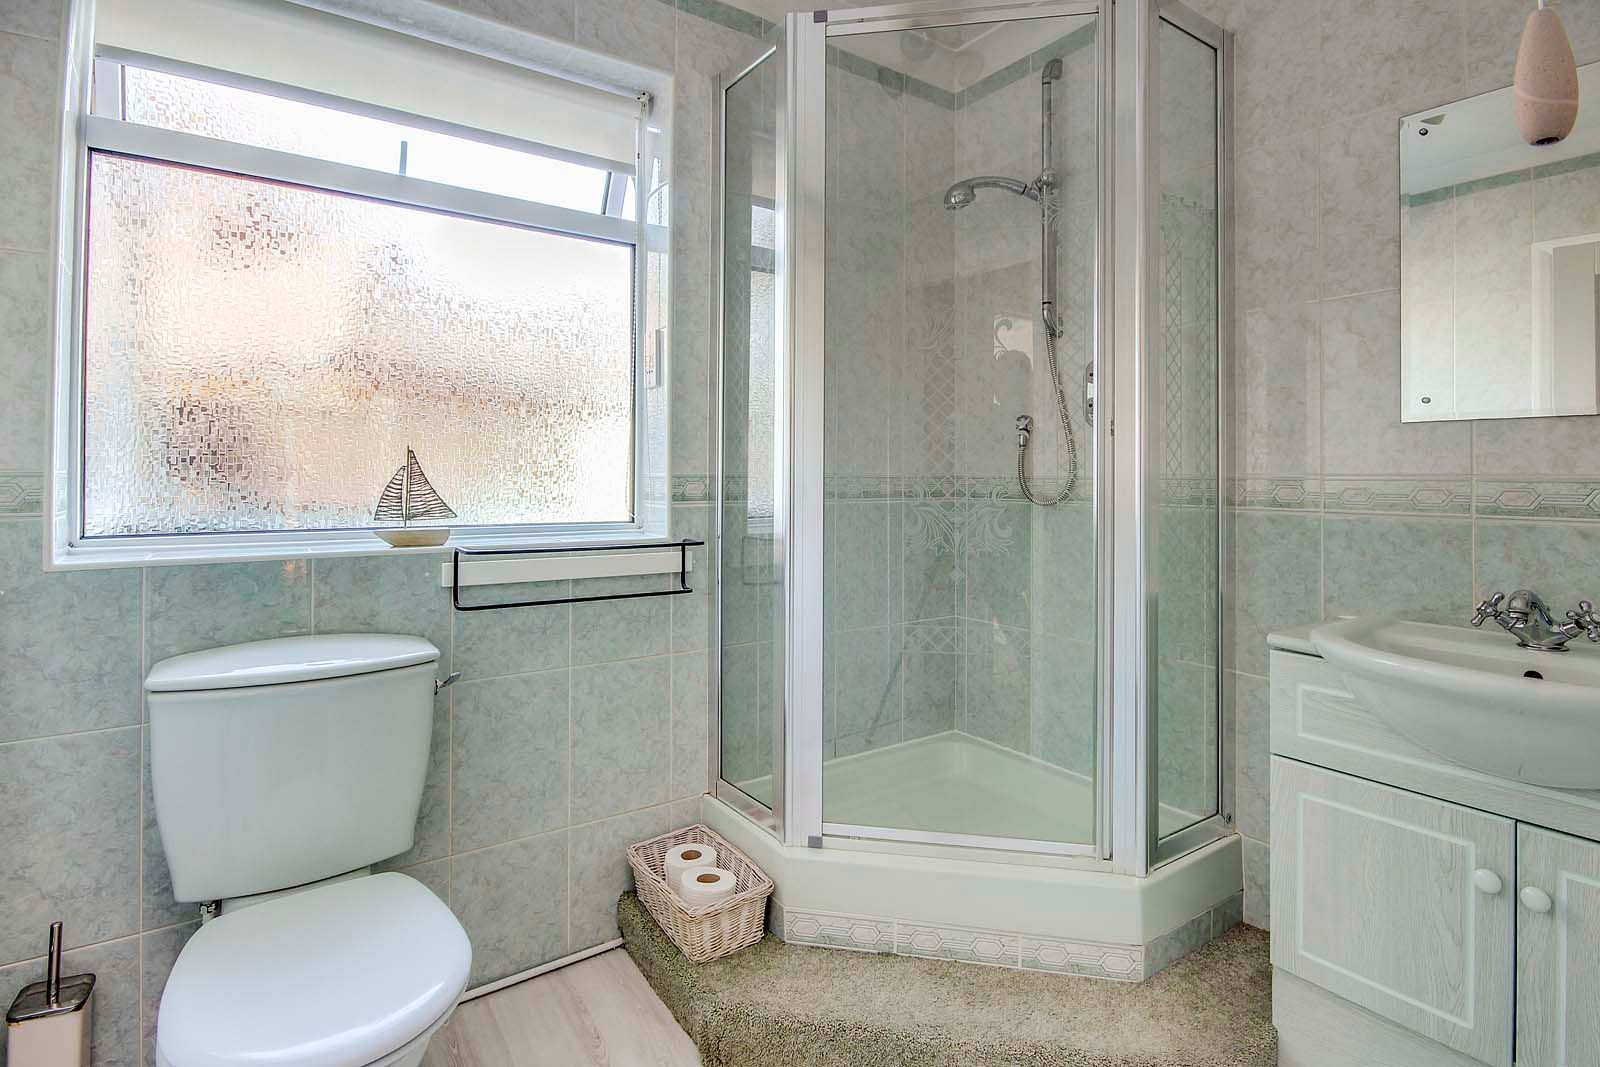 4 bed House for sale in Rustington - Shower room (Property Image 14)